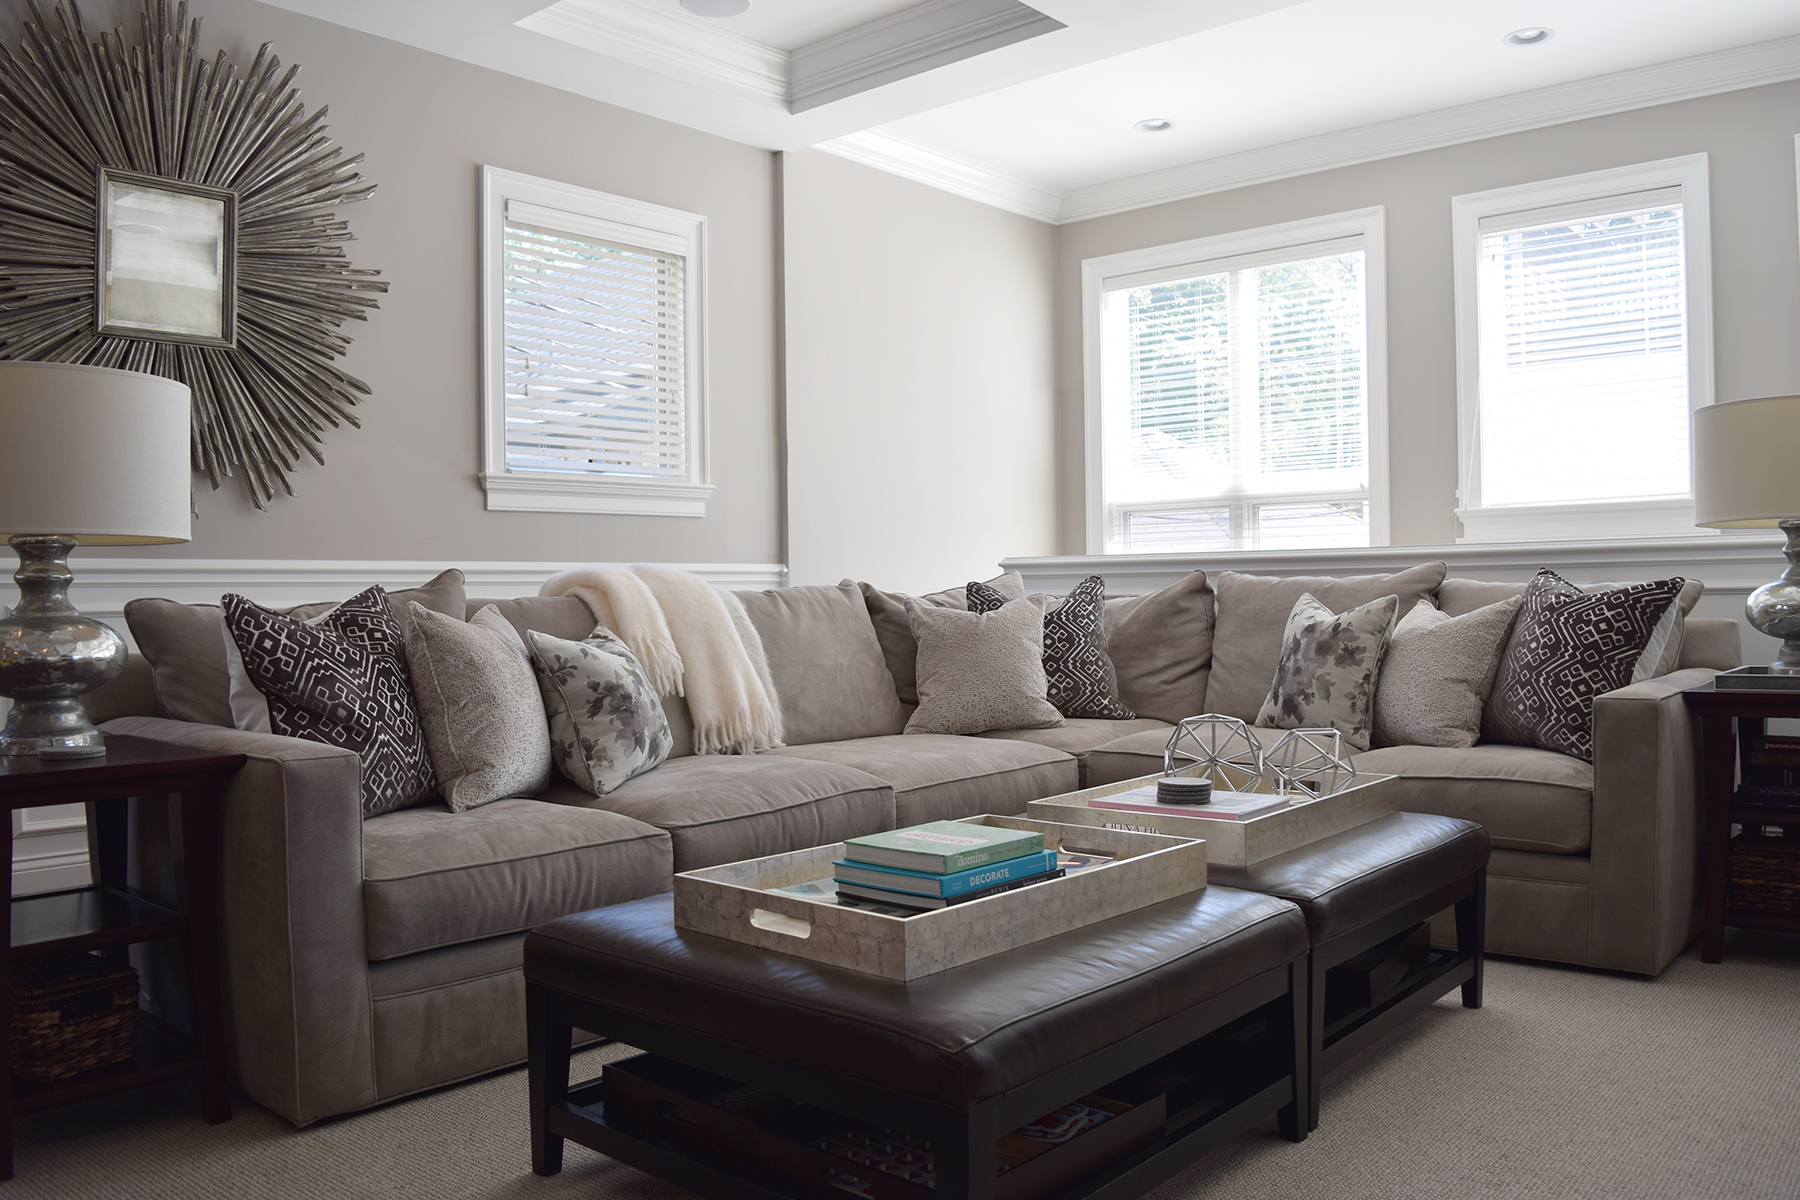 Melrose Streetfamily room - refresh of accessories, pillows andart. By Honsen Interiors